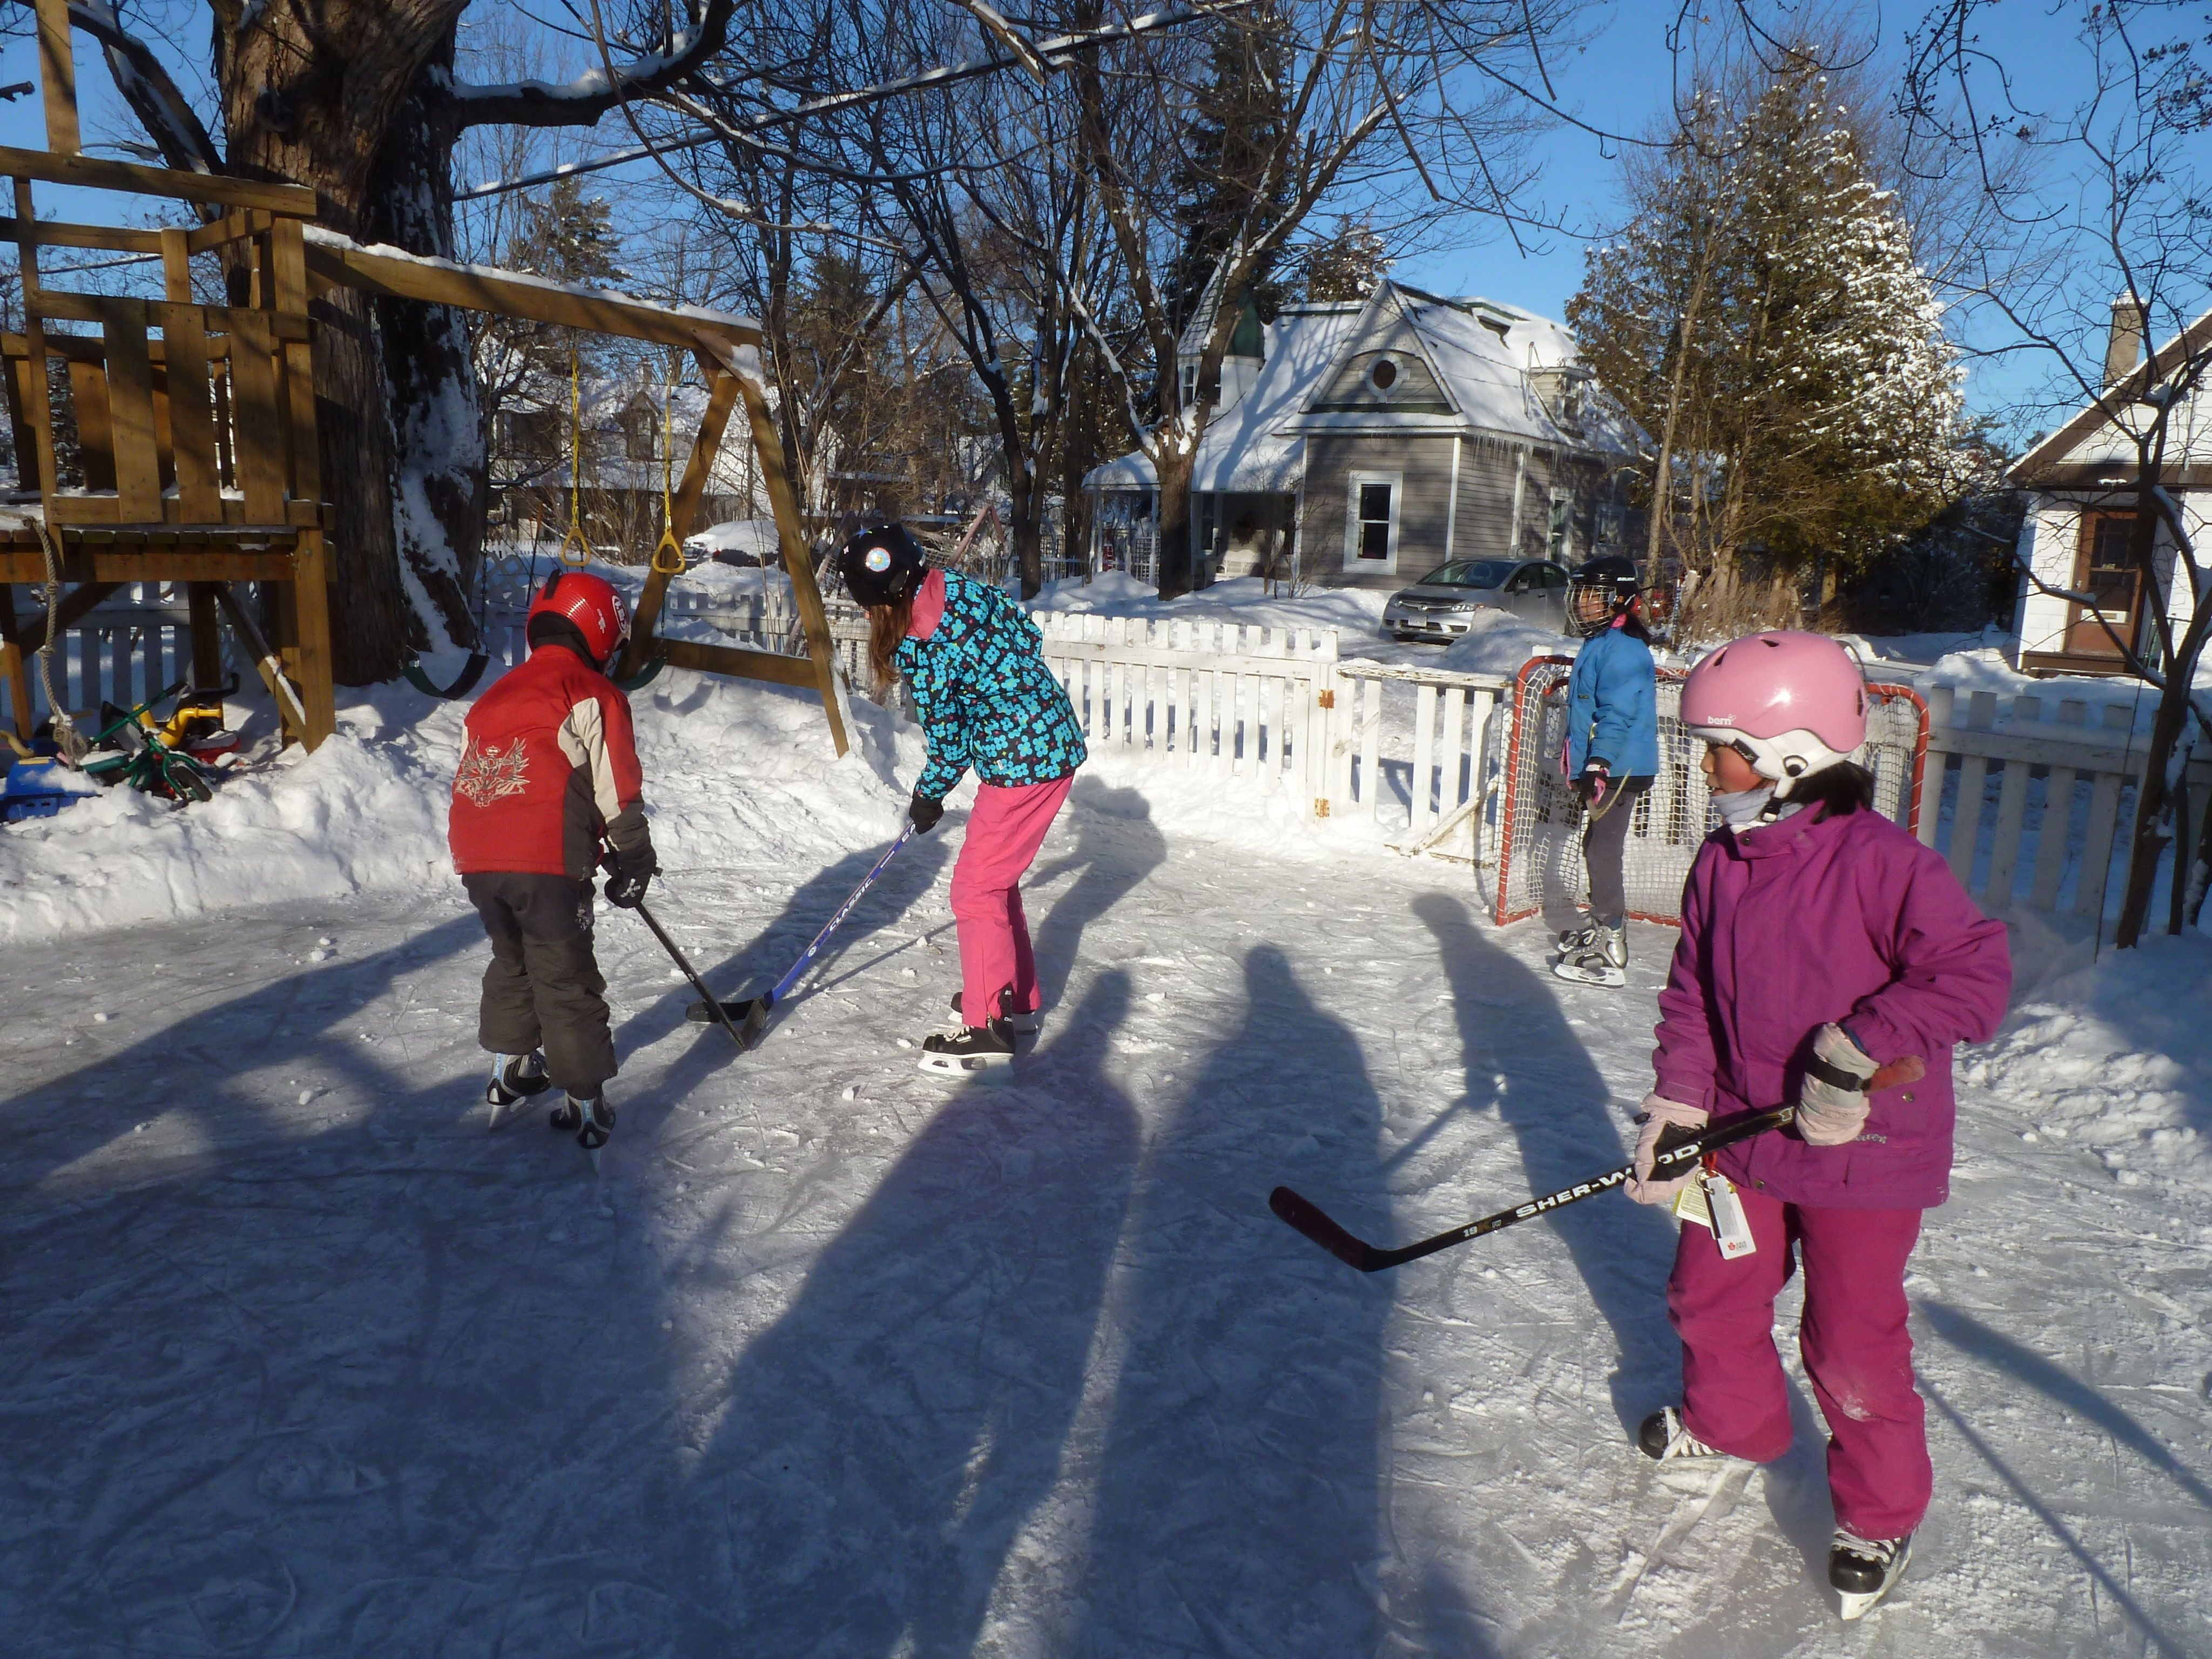 build an outdoor skating rink got questions get answers